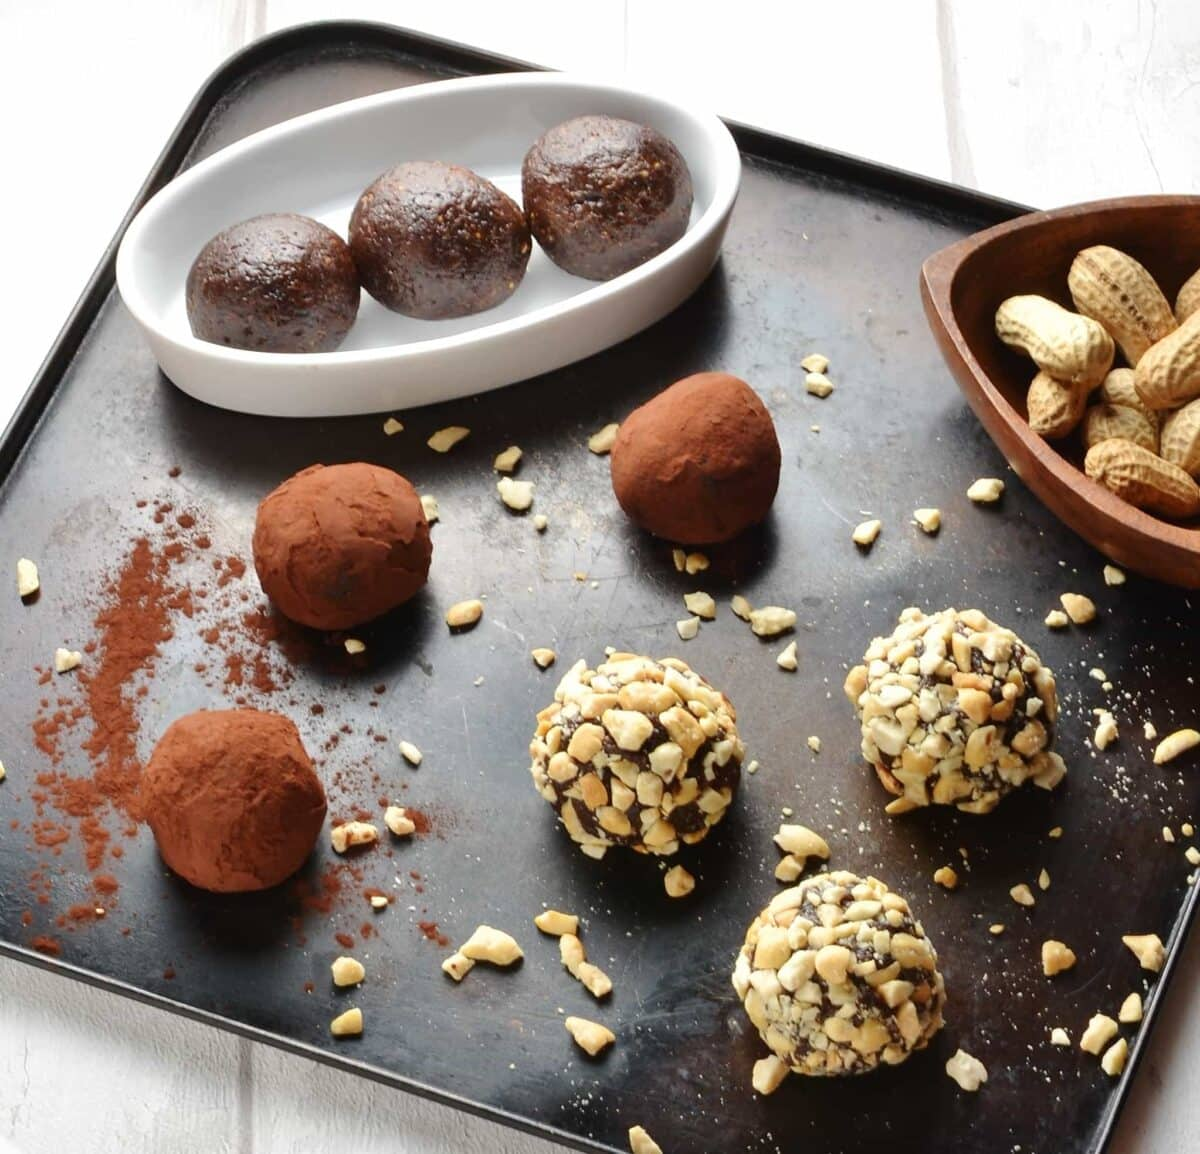 Side view of chocolate energy balls coated in cocoa and crushed nuts on metallic tray.